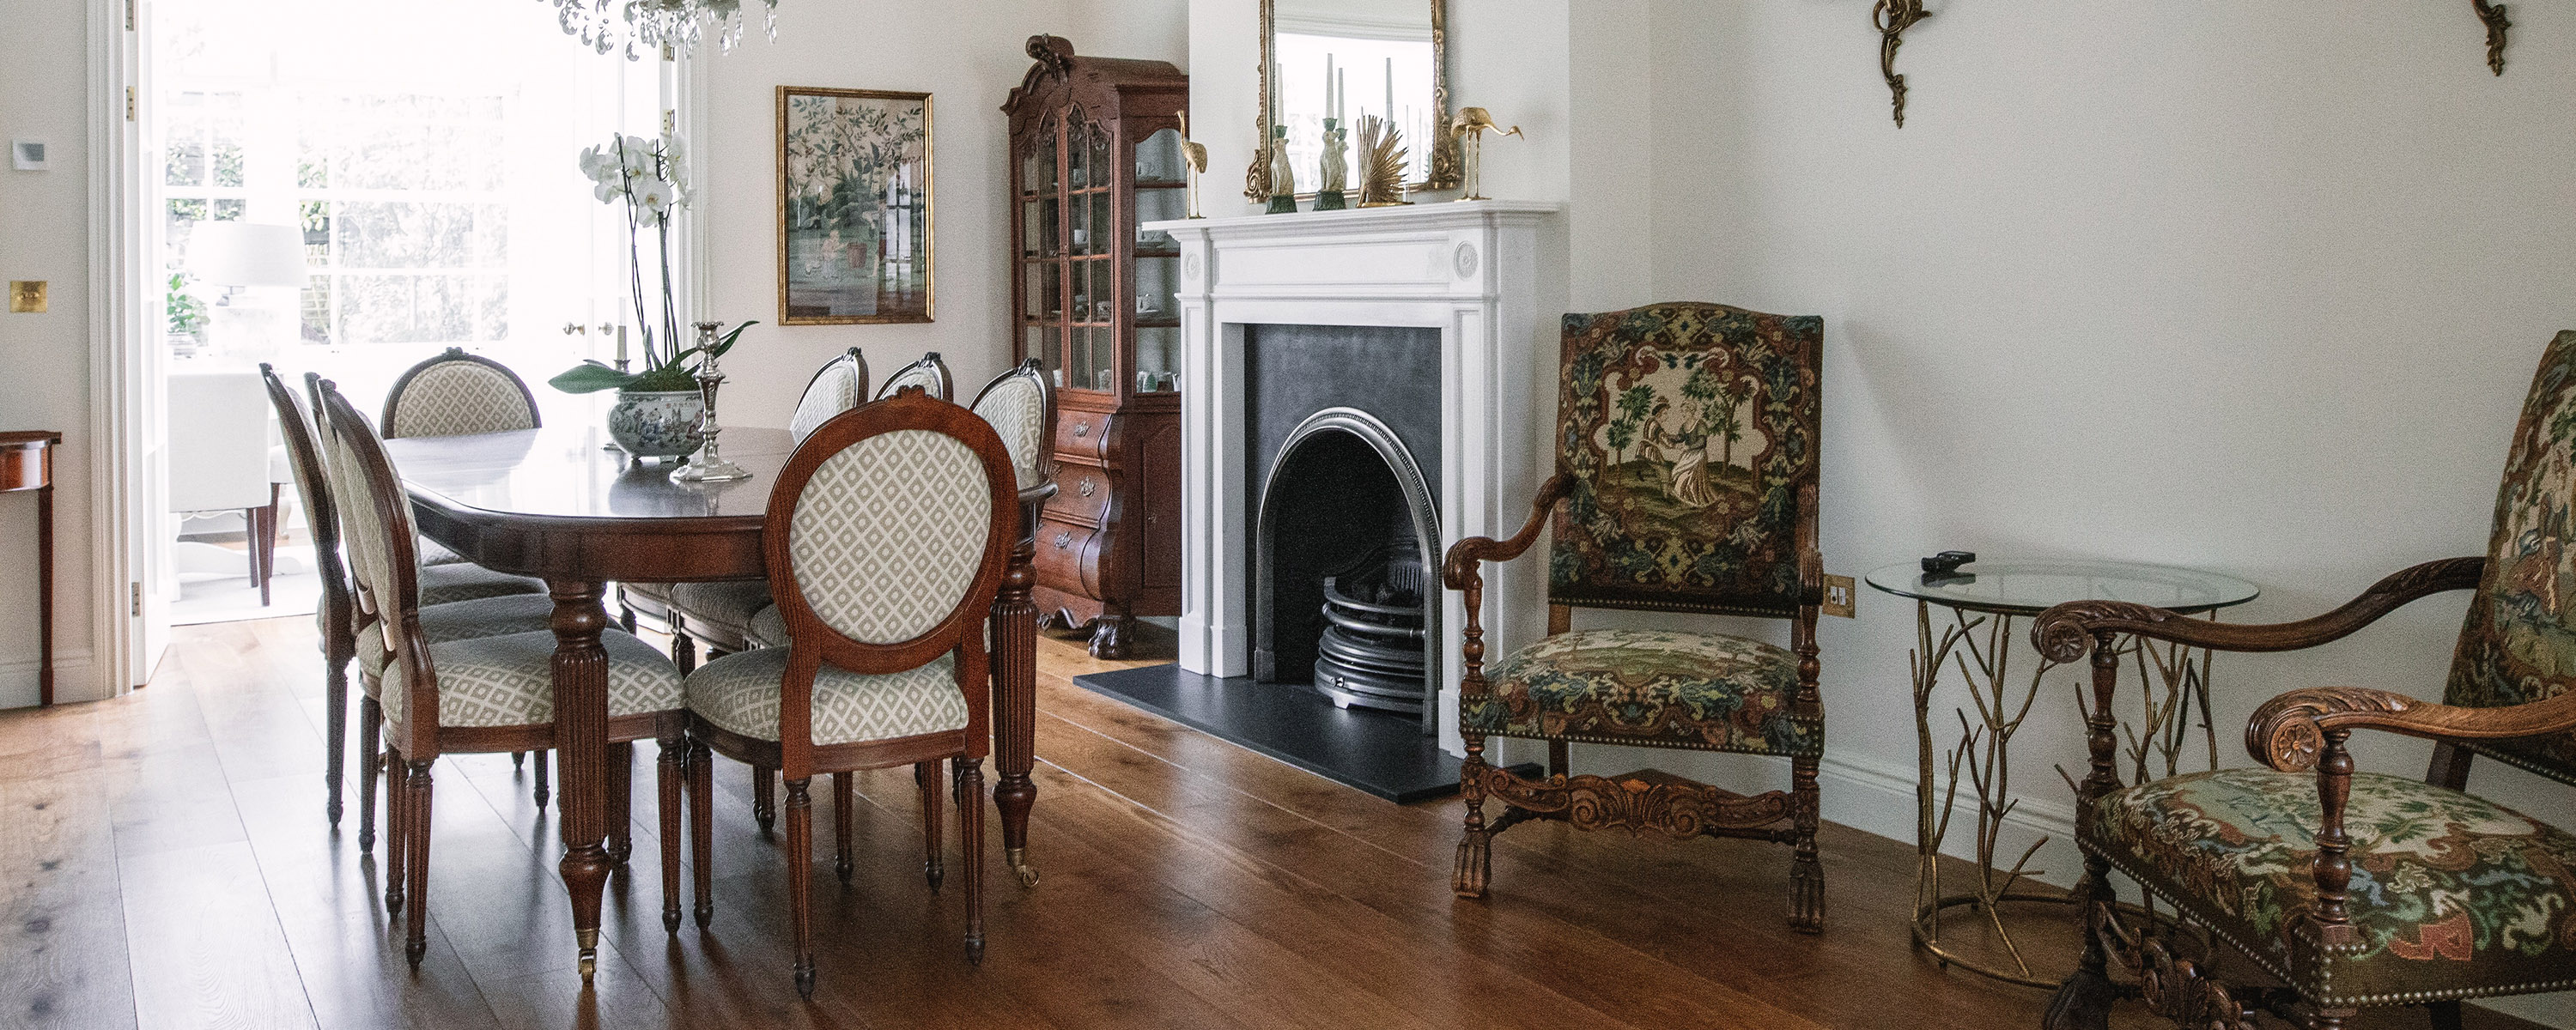 grand and spacious dining room with antique furniture in victorian style in ST Johns wood, LOndon